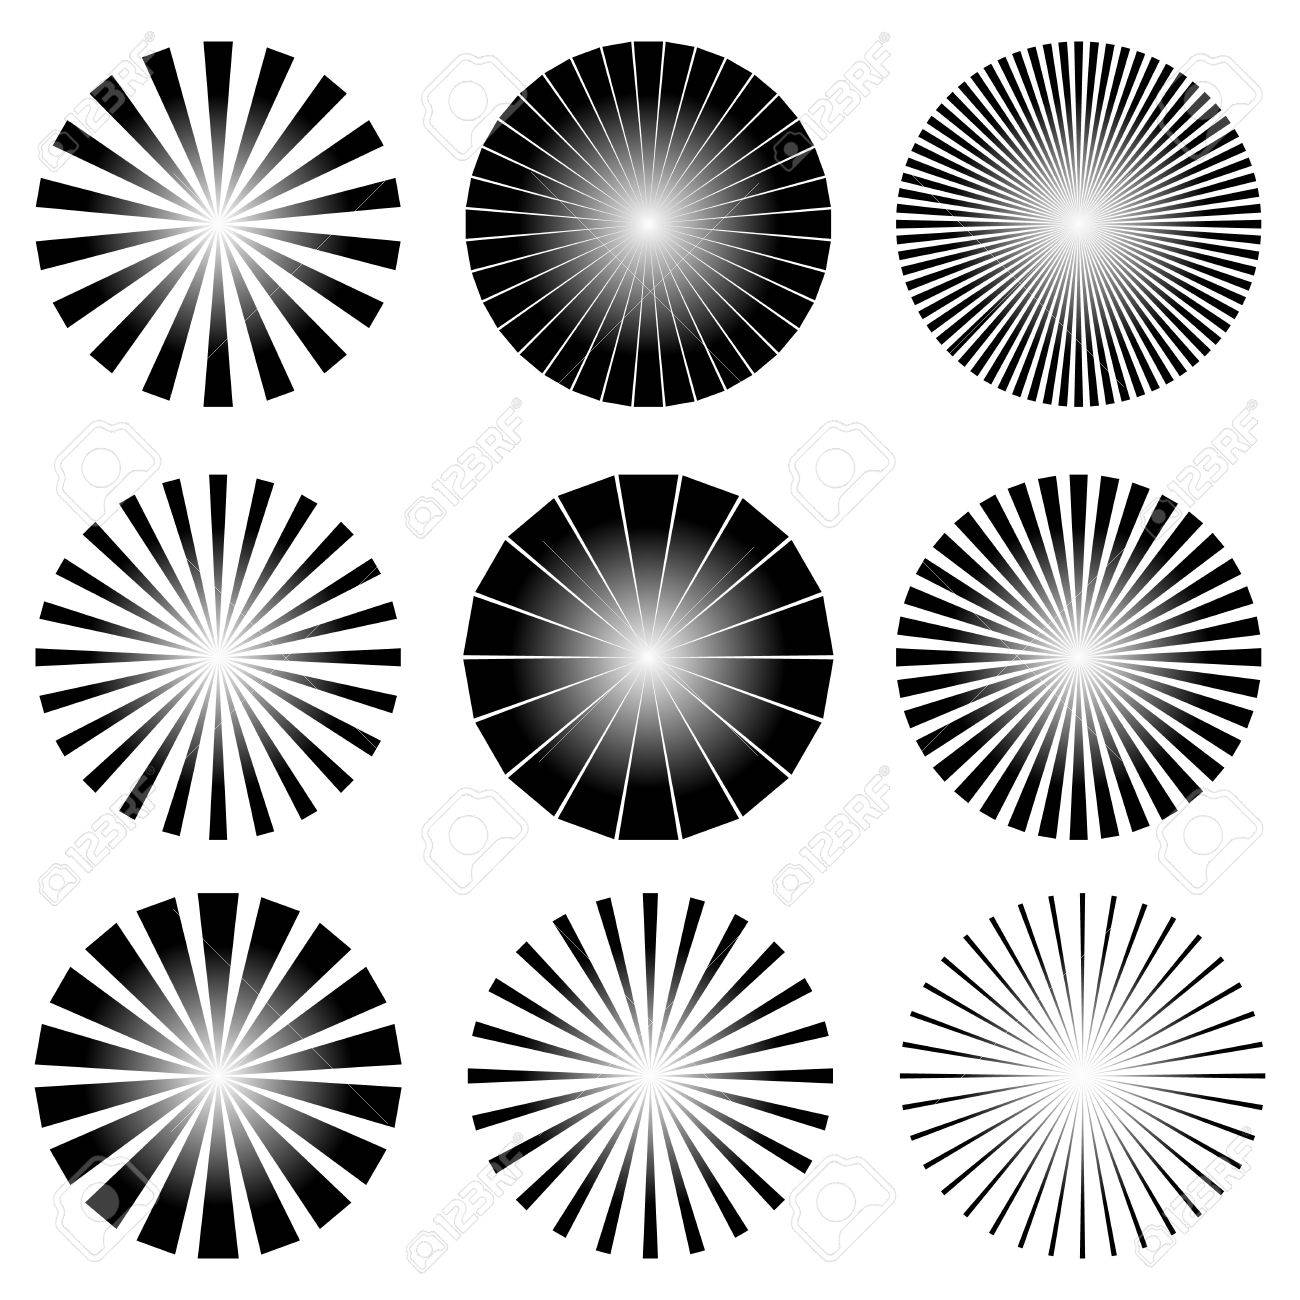 vector vector illustration of radial elements set starburst or sunburst backgrounds rays template